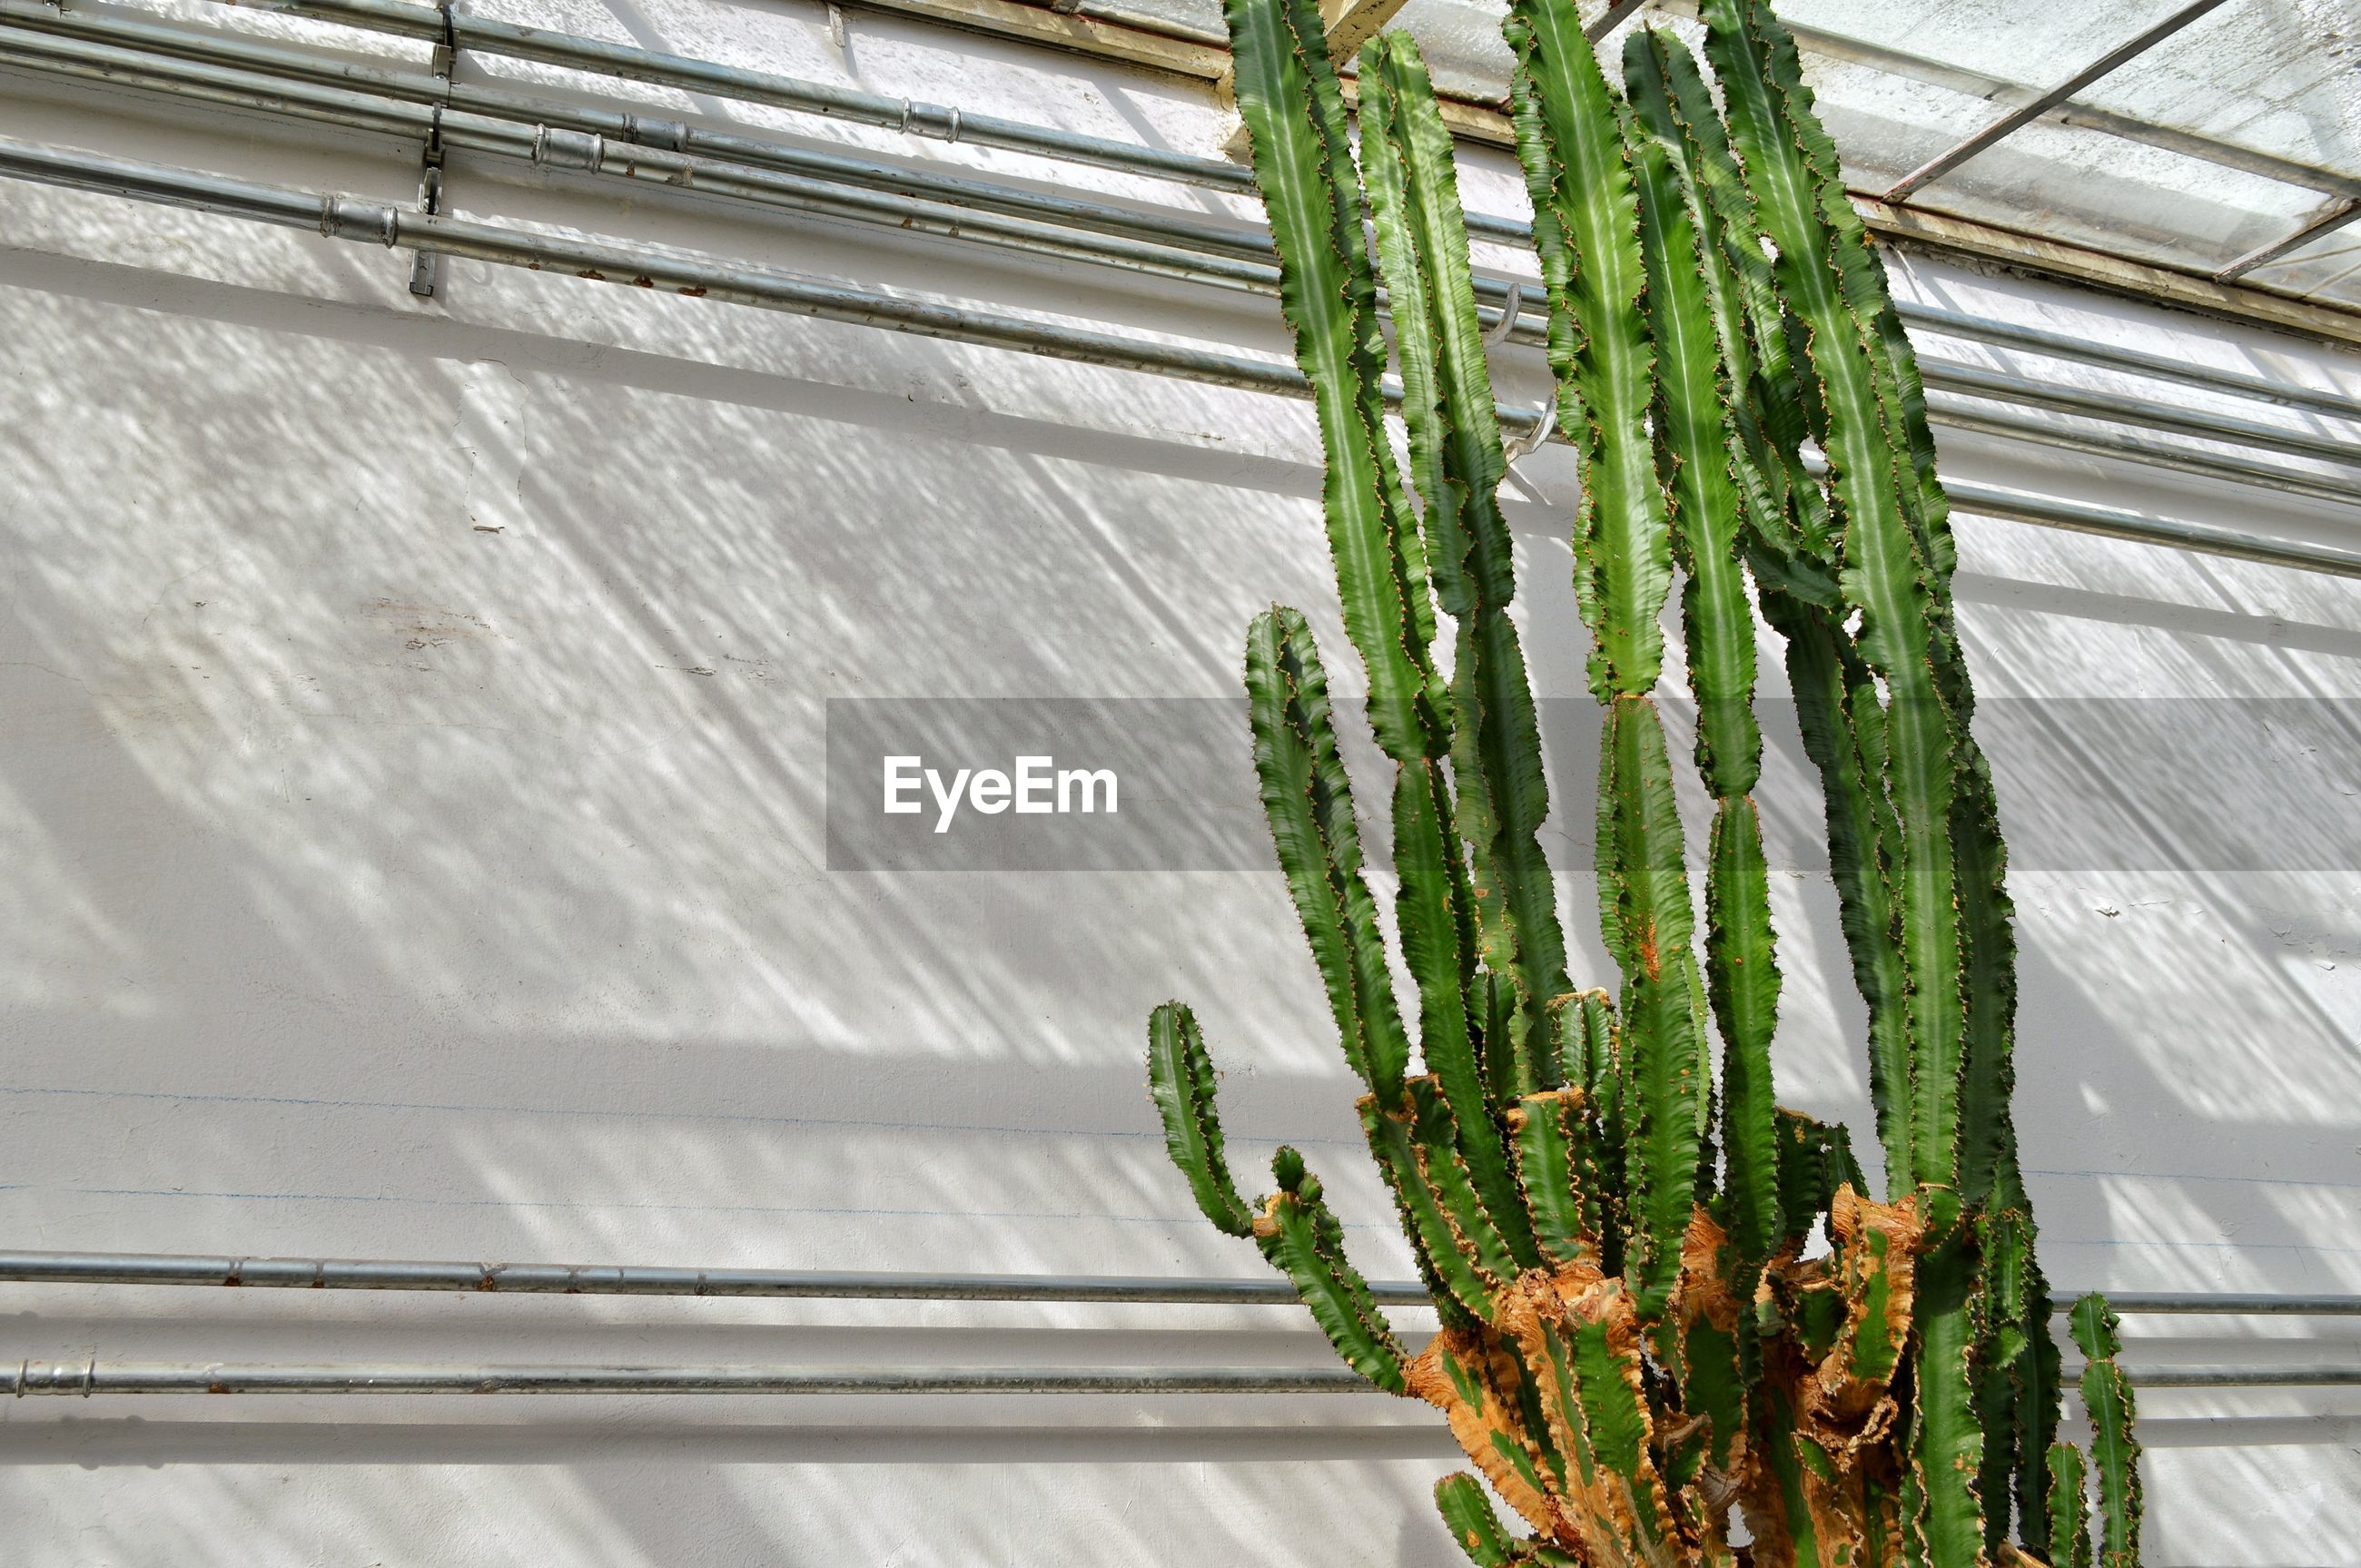 Low angle view of cactus growing against white wall